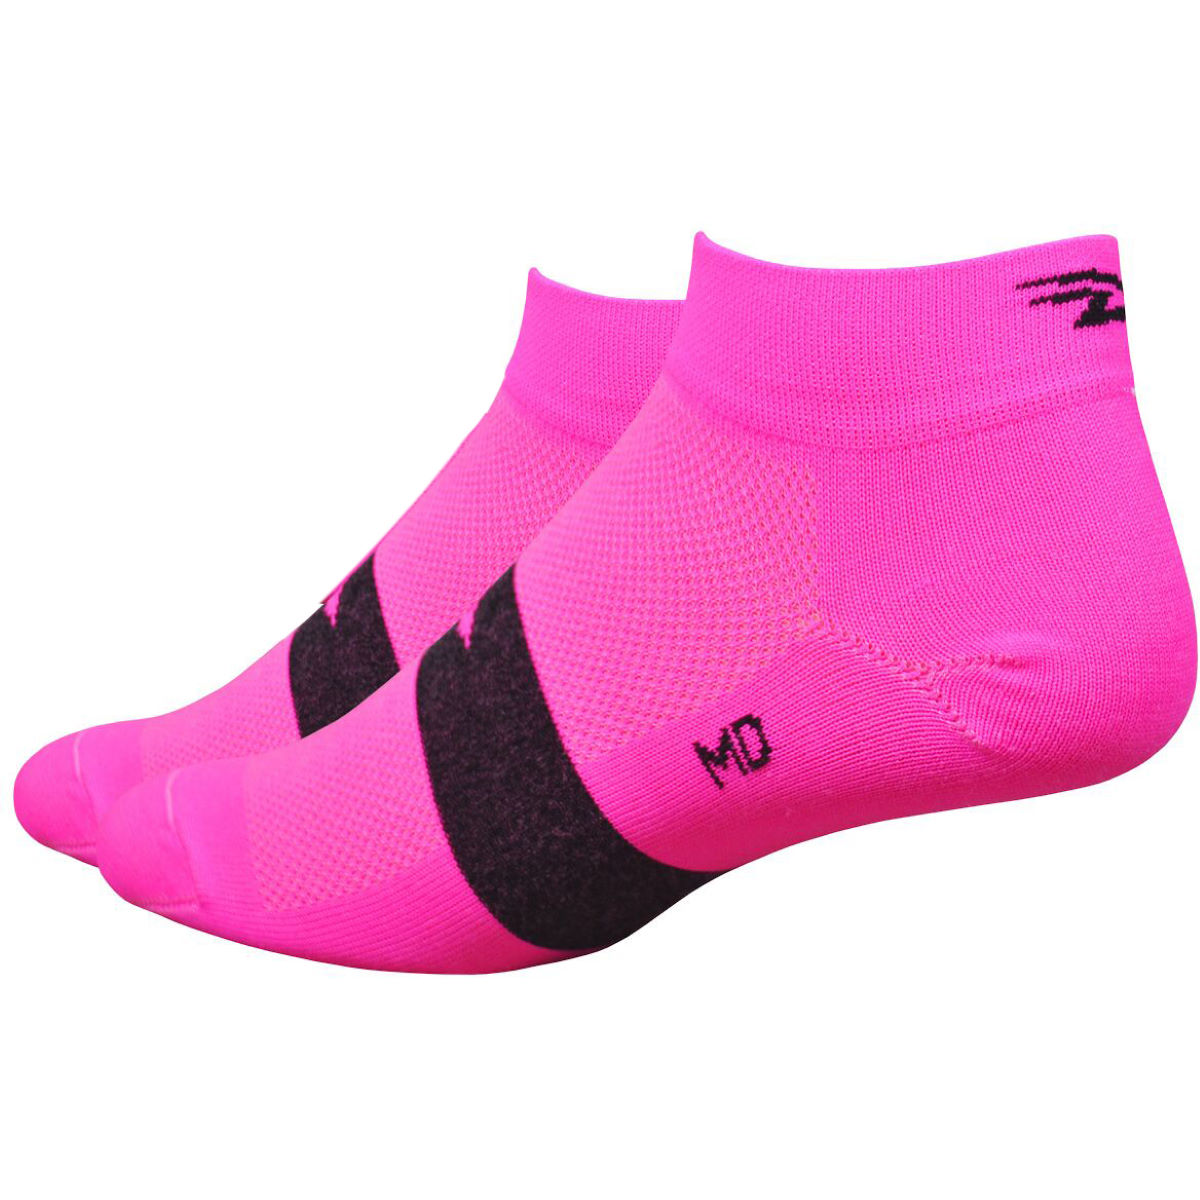 Chaussettes DeFeet Aireator Speede (2,5 cm environ) - M Rose